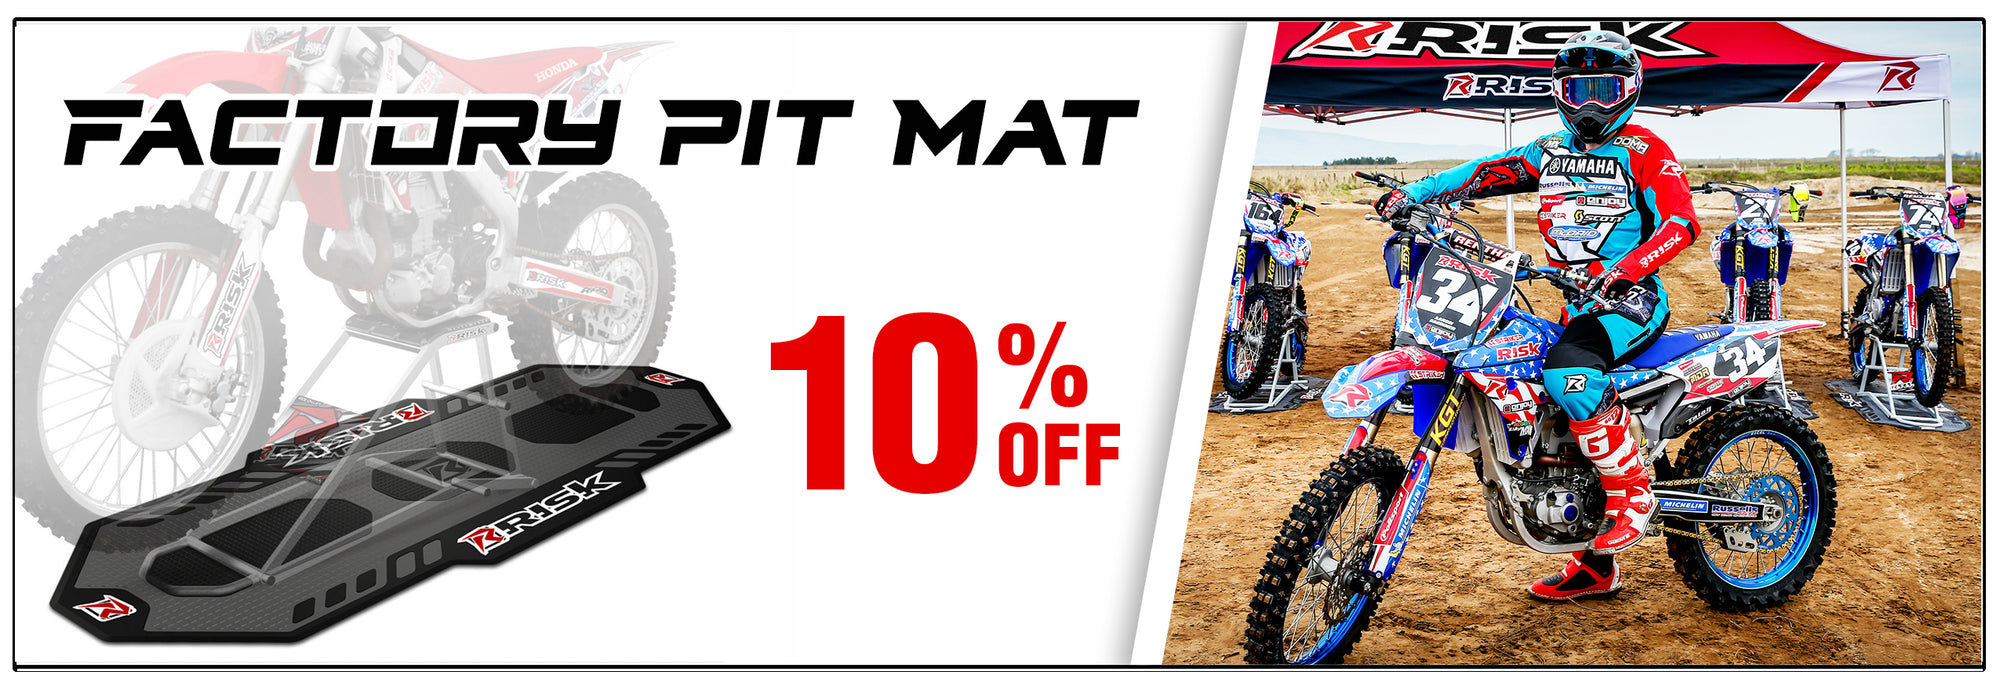 Deal of the Month - 10% off Factory Pit Mat